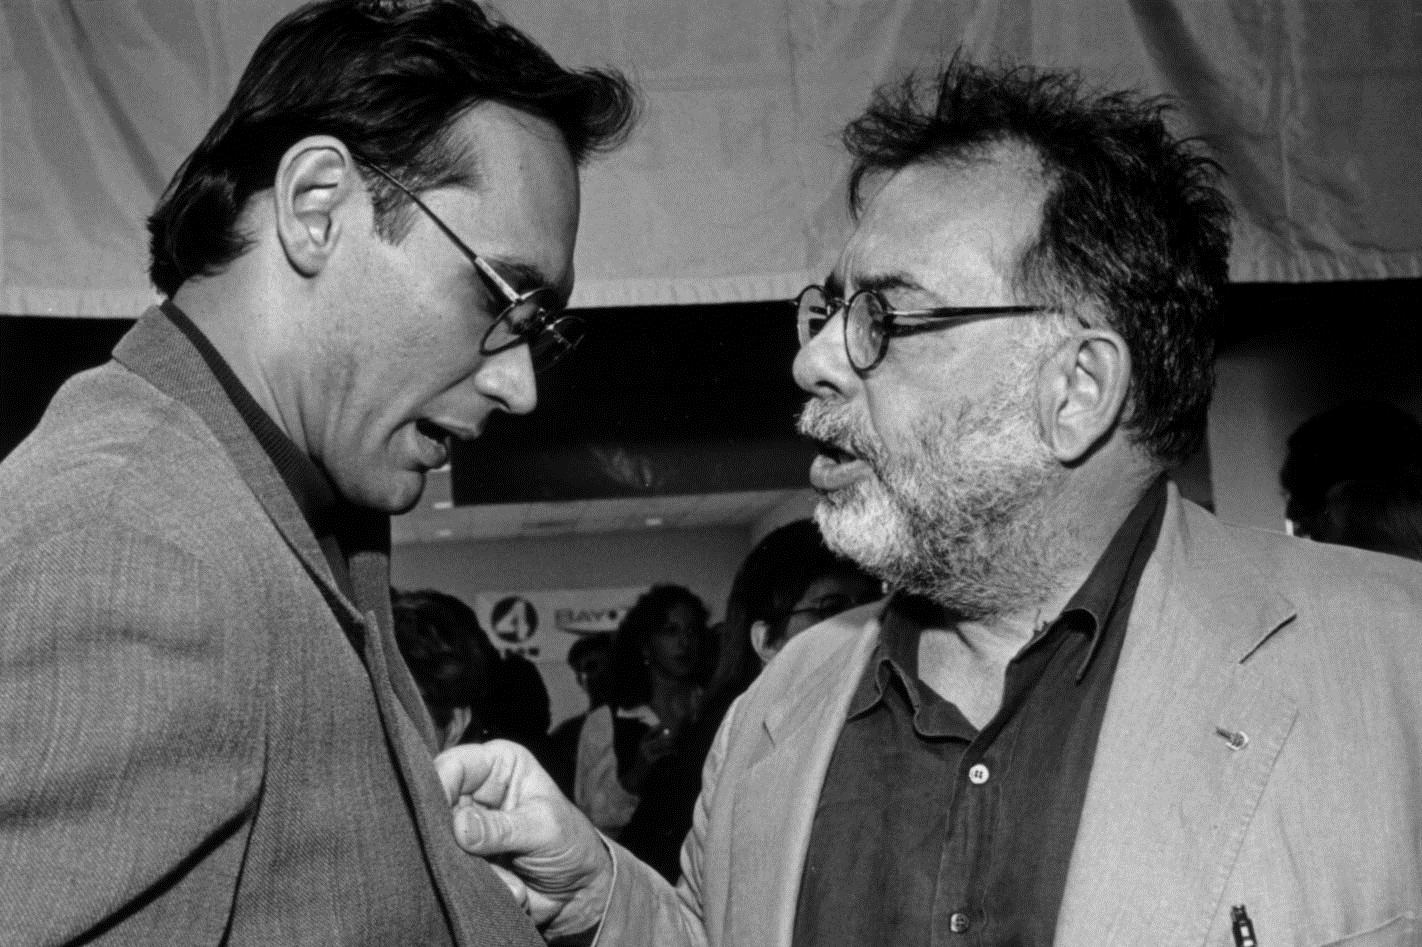 Francis Ford Coppola with Jimmy Smits at the 38th SFIFF